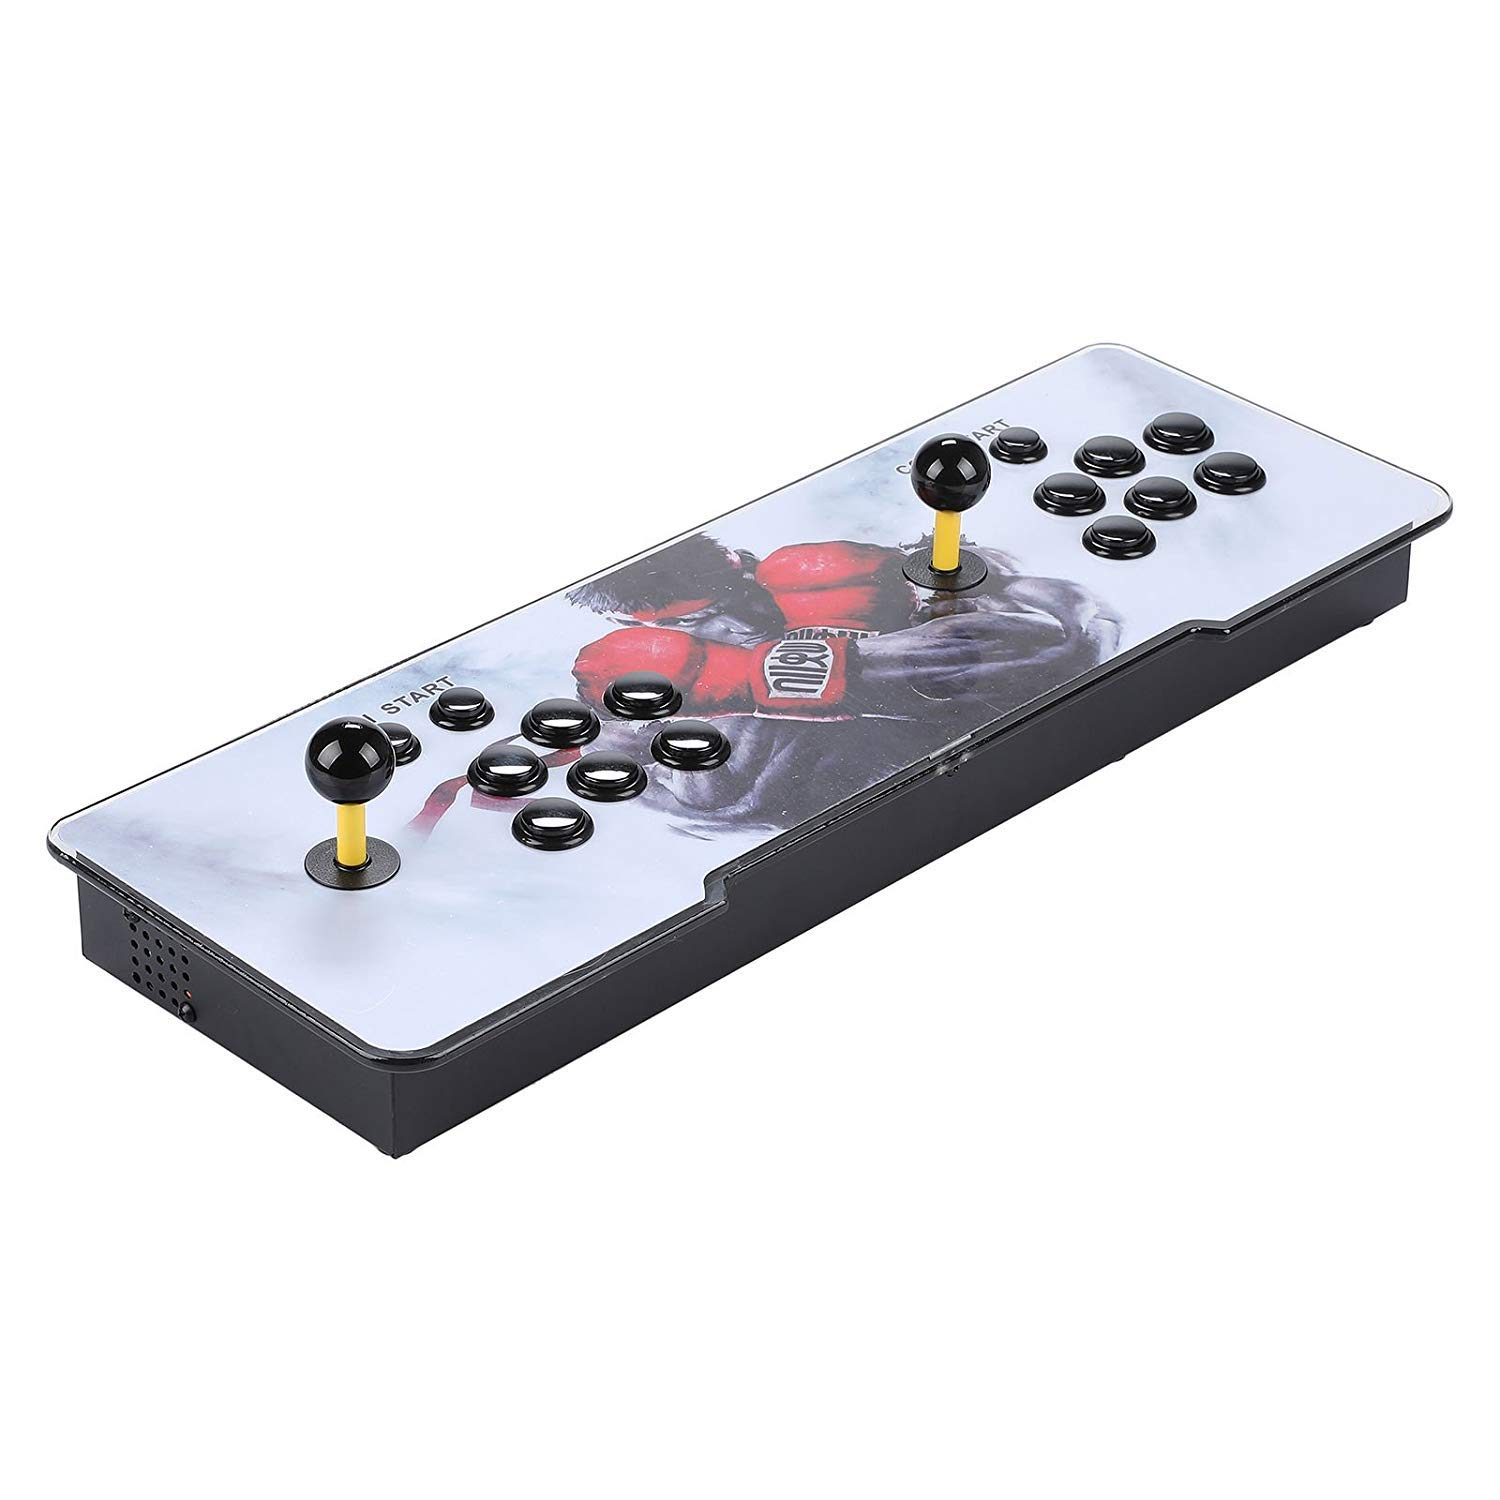 Happybuy Real Pandora's Box 6 Arcade Game Console HD Retro 3D Pandora's Key 7 Arcade Video Game 1500 in 1 Arcade Console with Arcade Joystick Support Expand Games for PC / Laptop / TV / PS4 by Happybuy (Image #5)